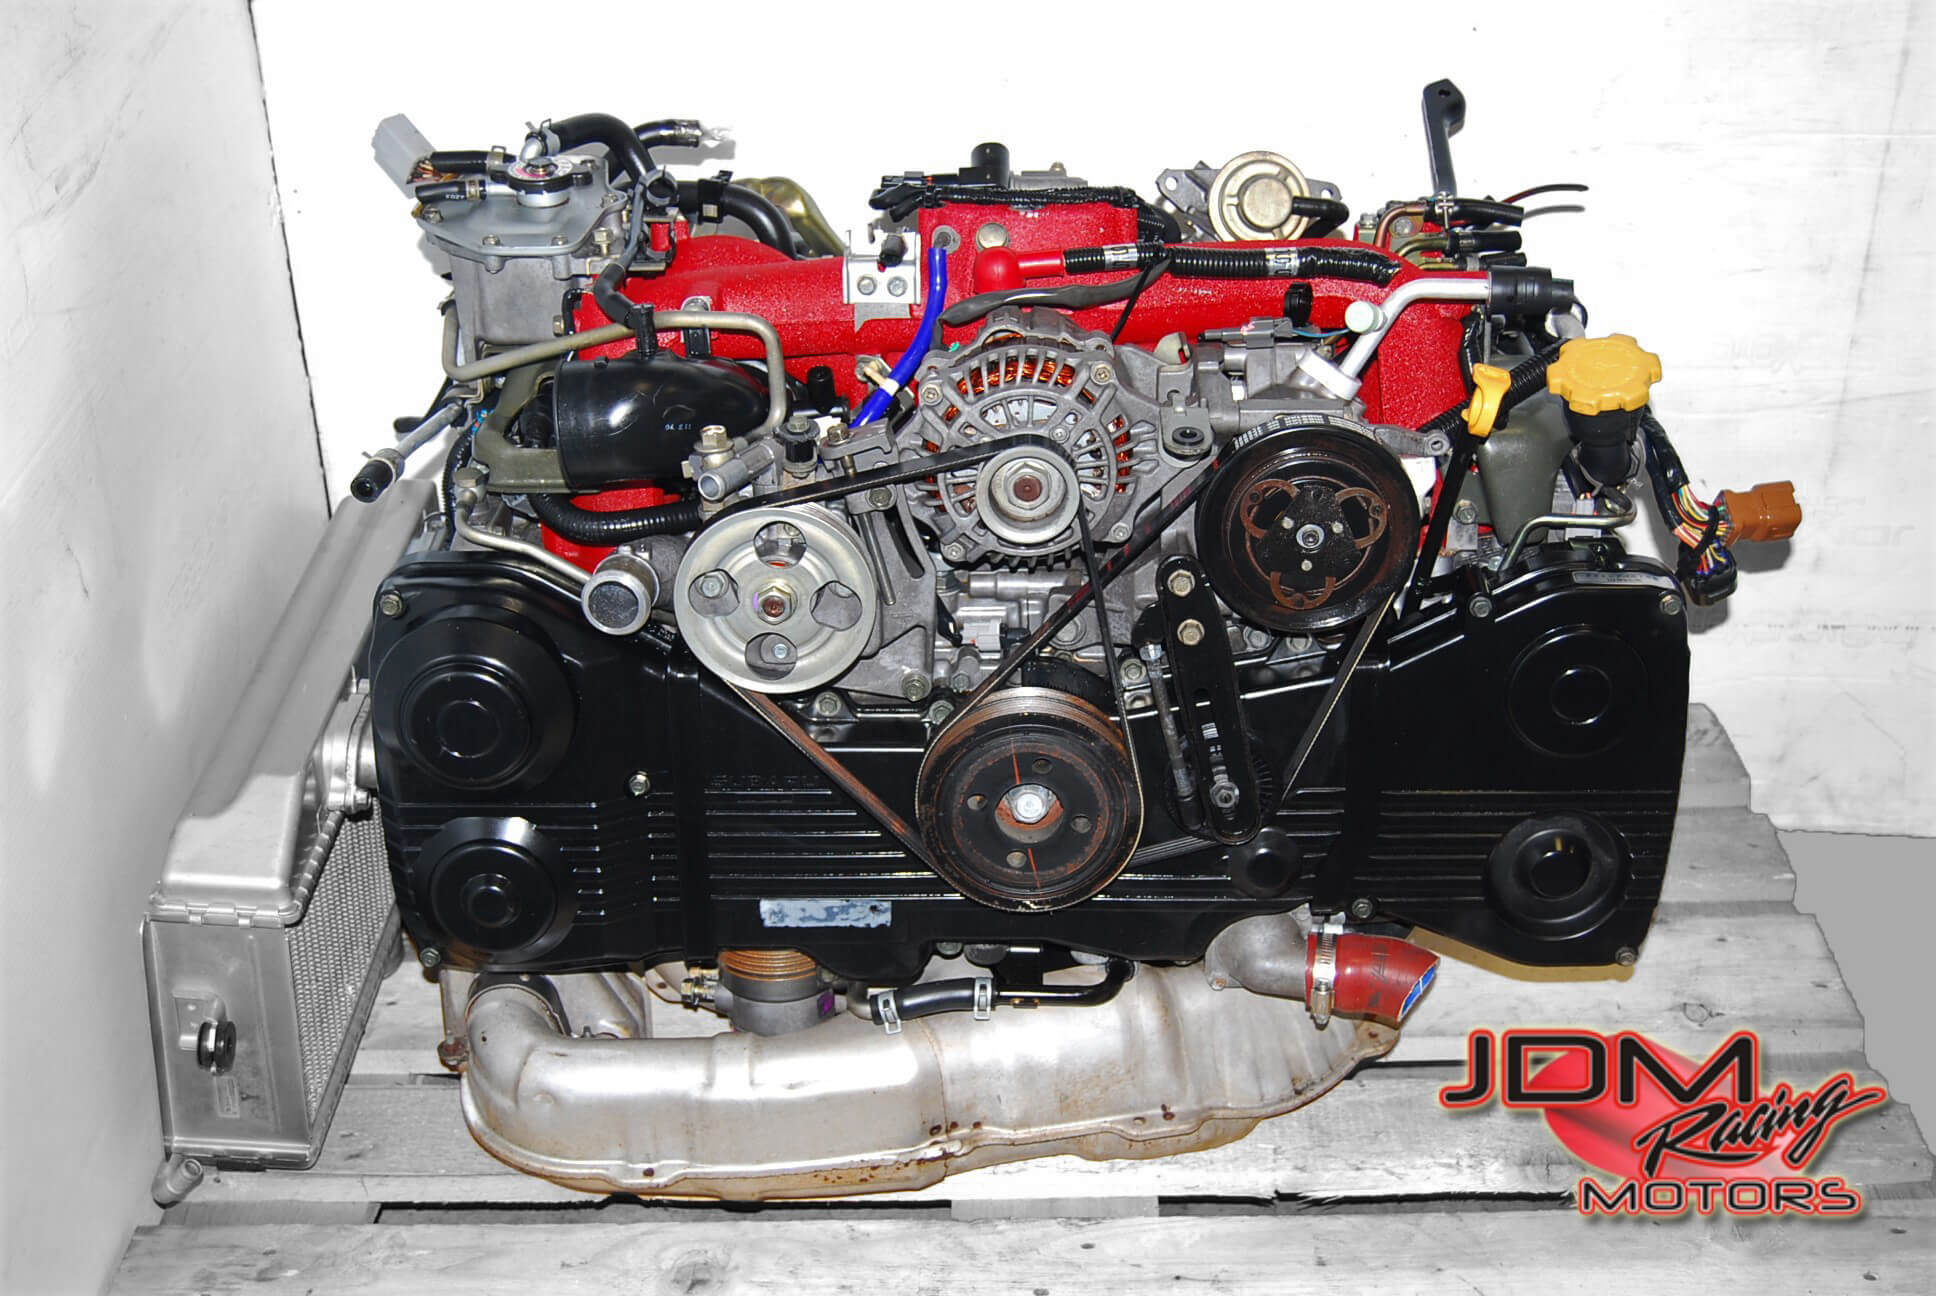 Subaru | JDM Engines & Parts | JDM Racing Motors